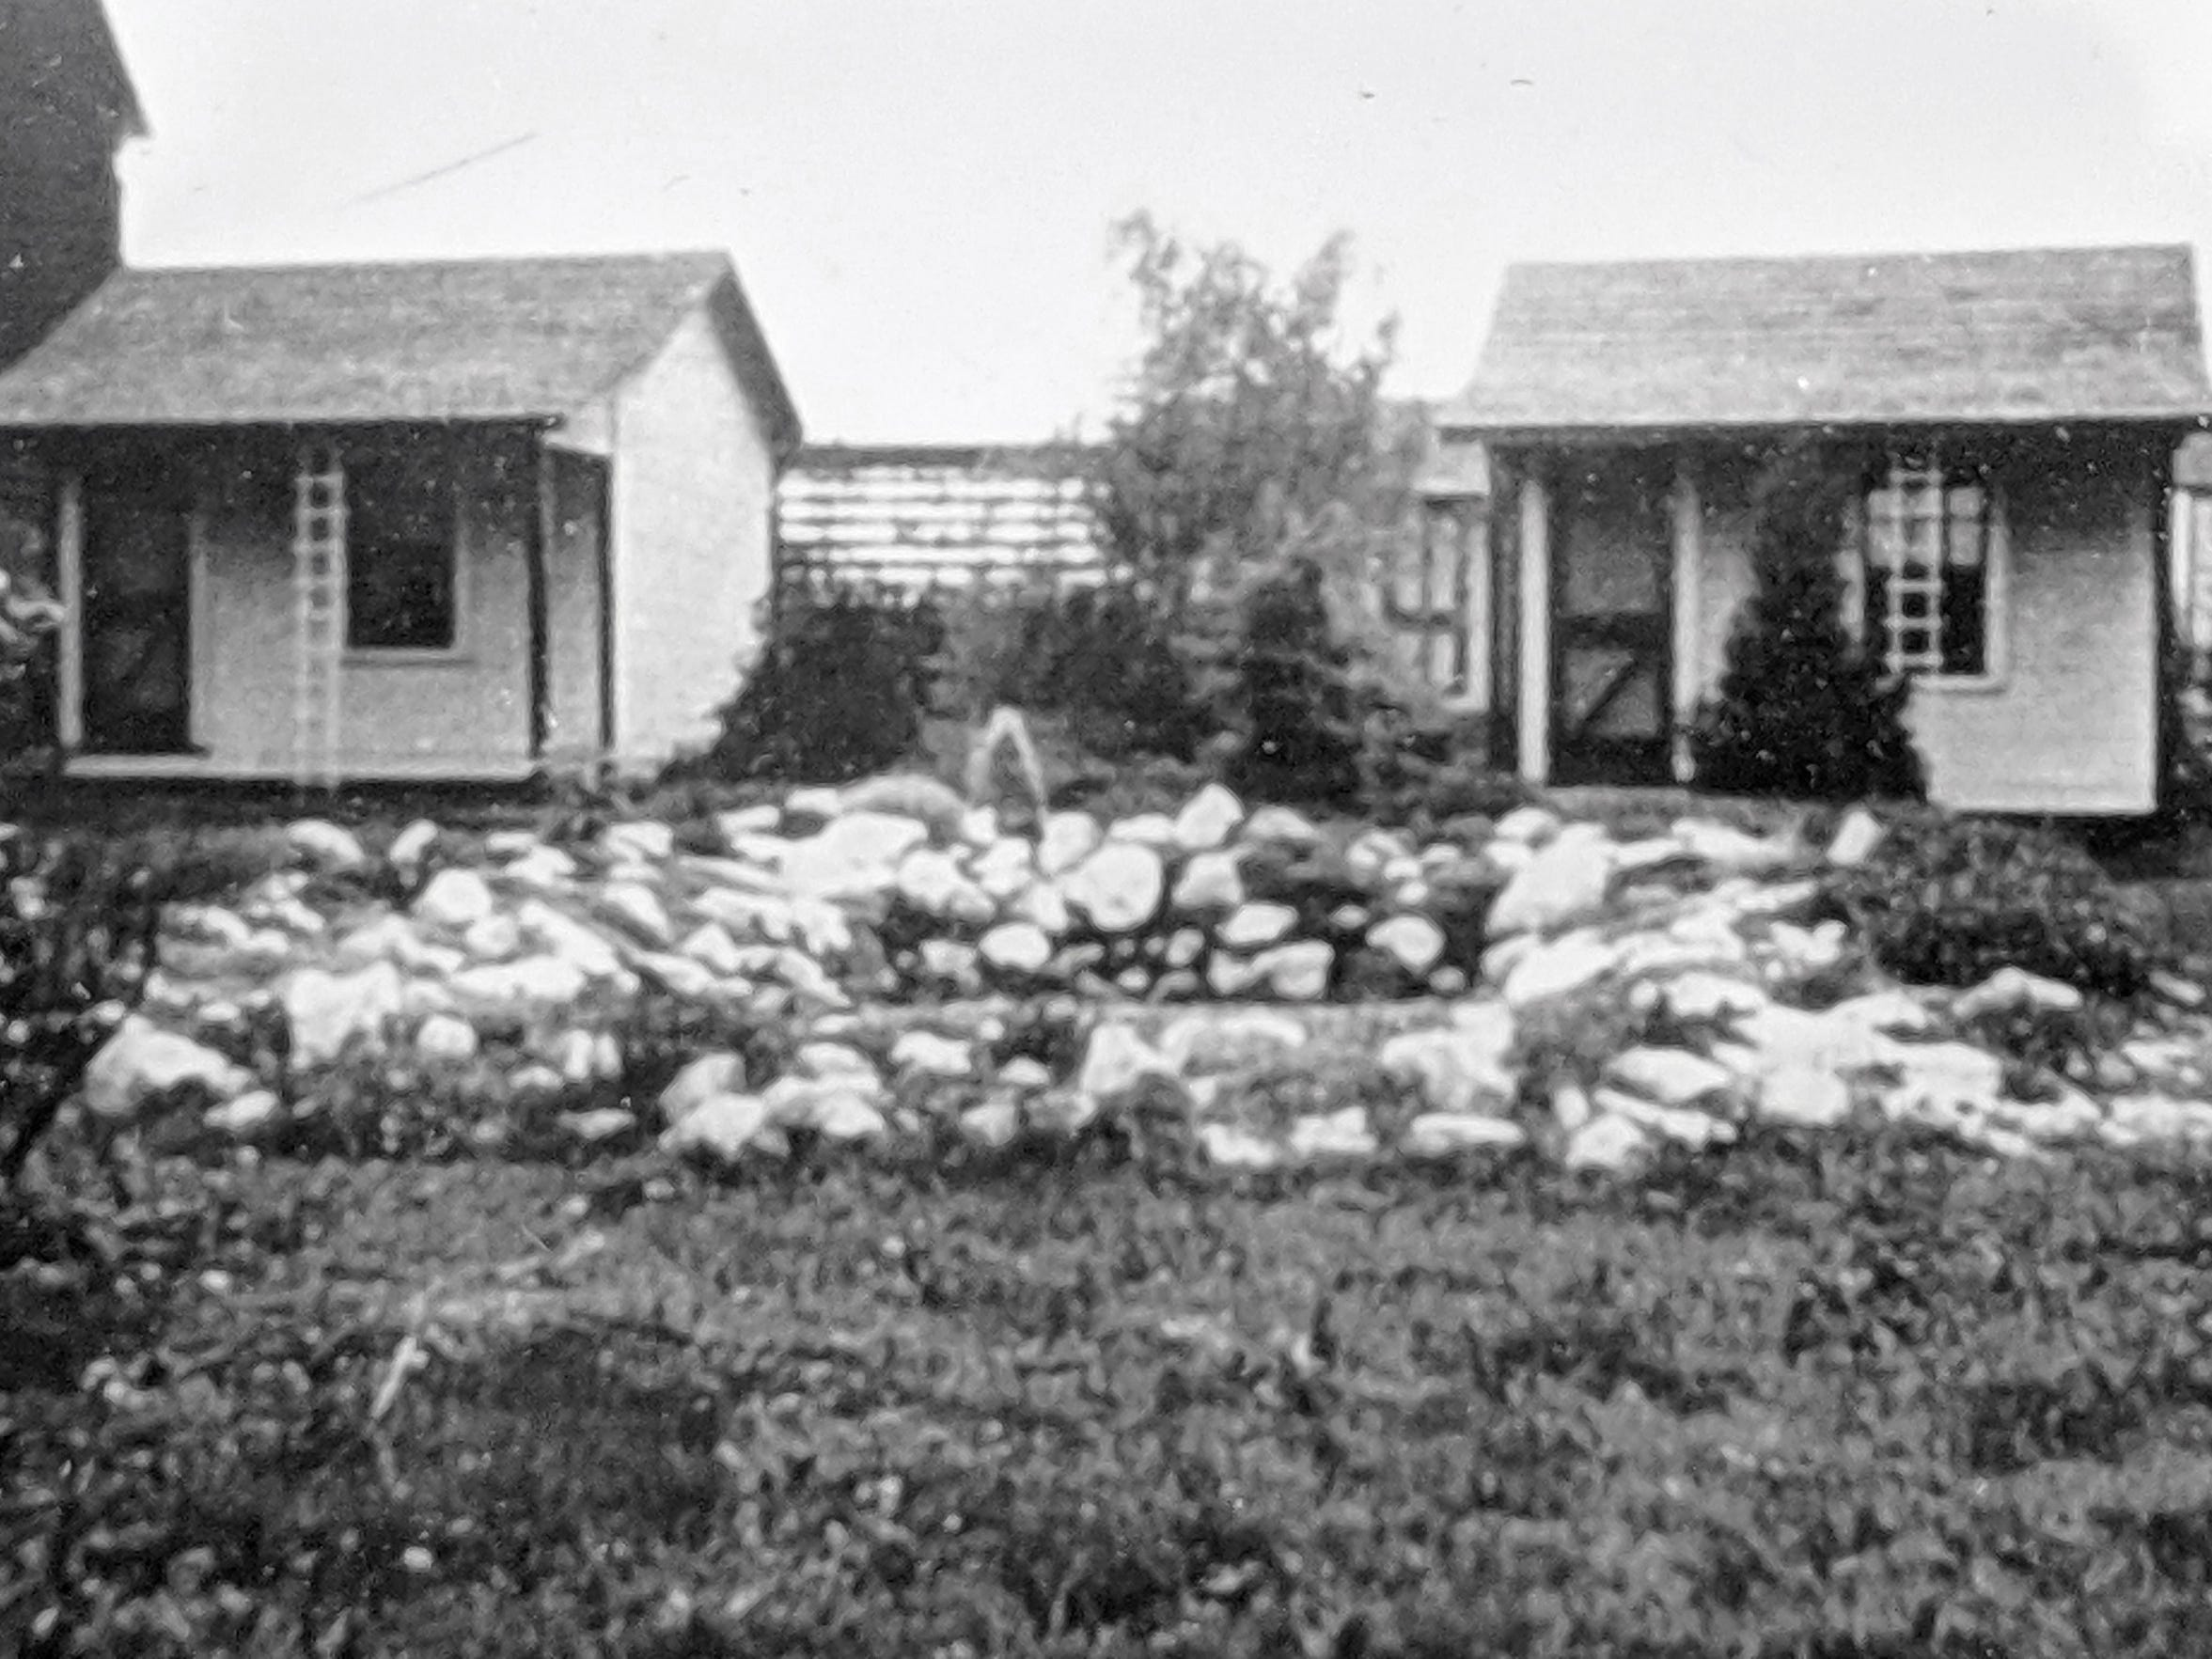 These are Smith's cottages, available as overnight accommodations, as they looked in 1939 behind the current Smith Village building in Jacobus. A pond is in the foreground.